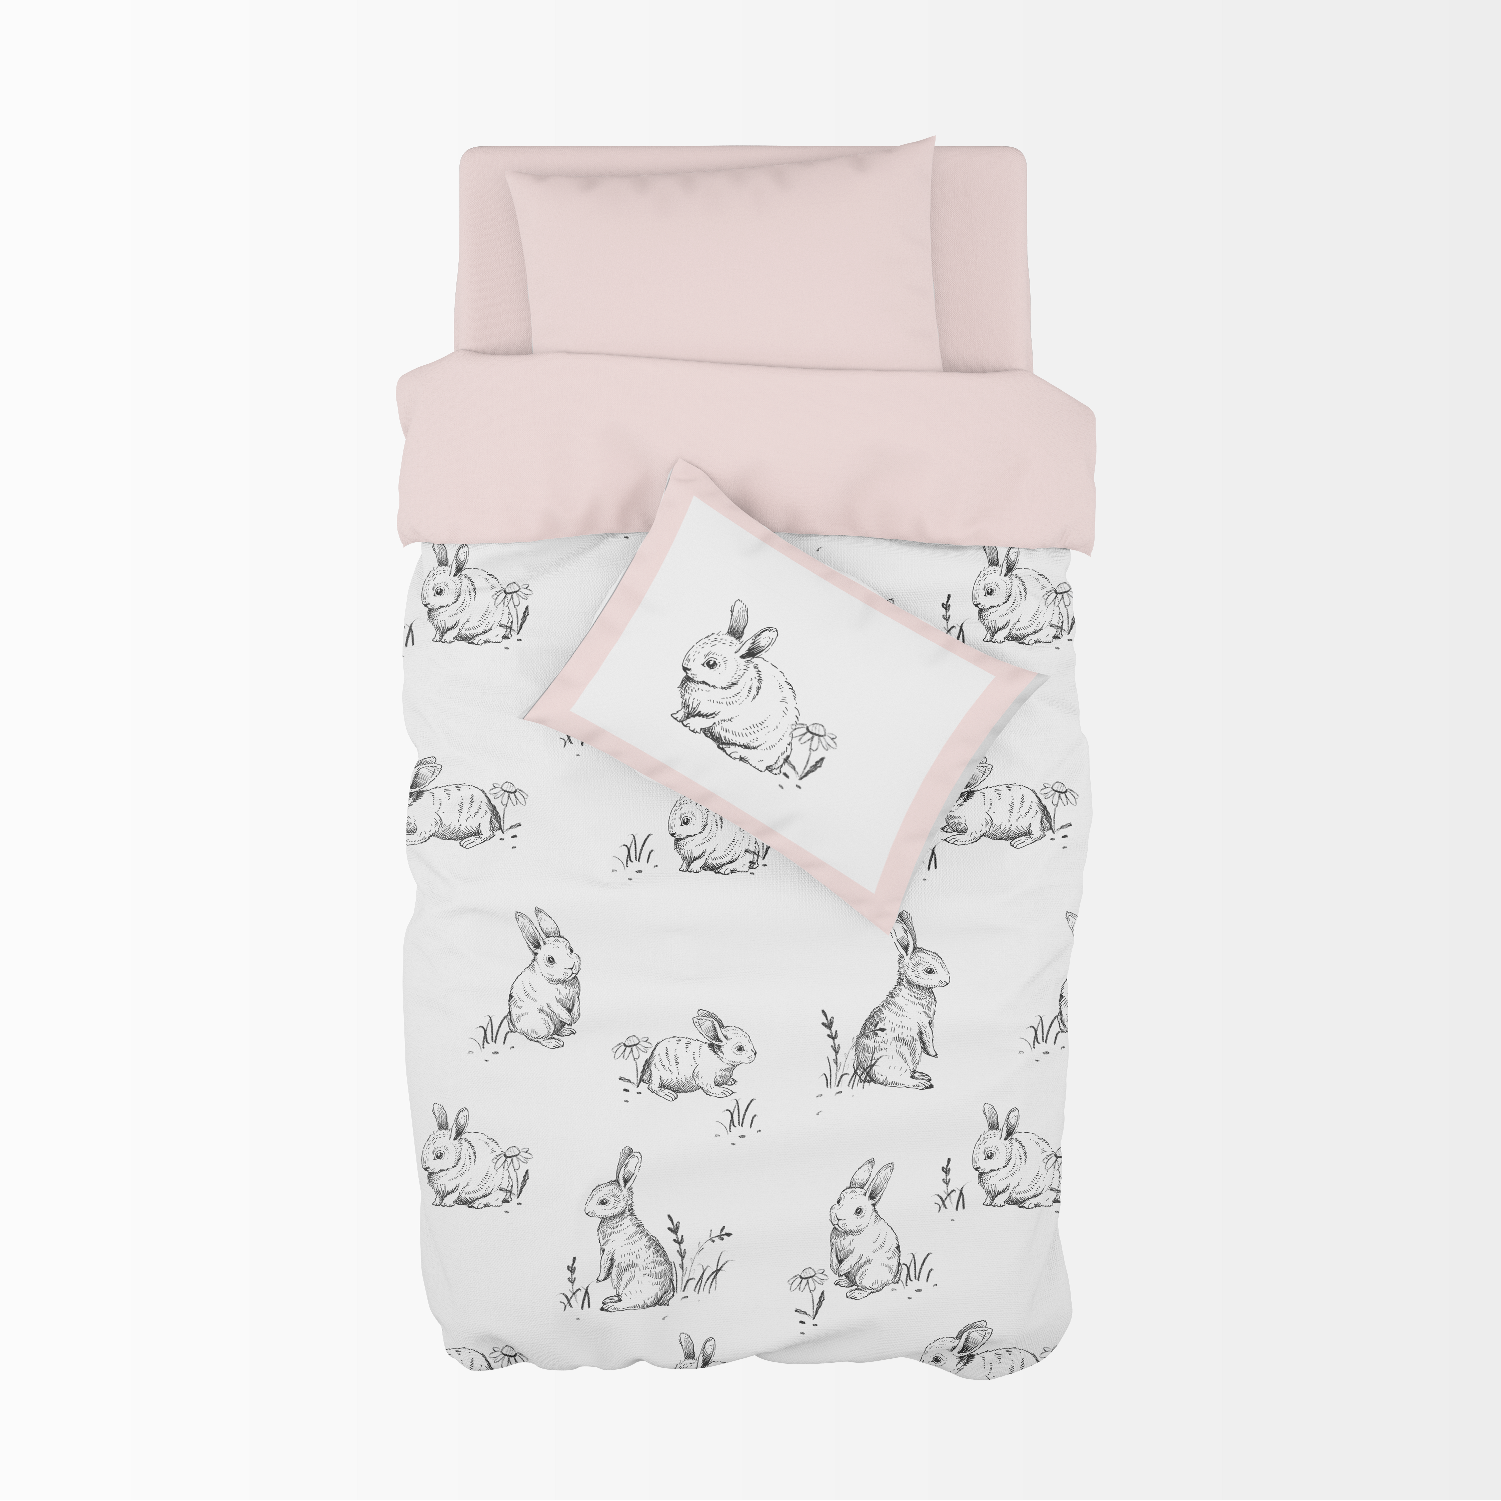 Sketch Bunnies Cot Duvet Set